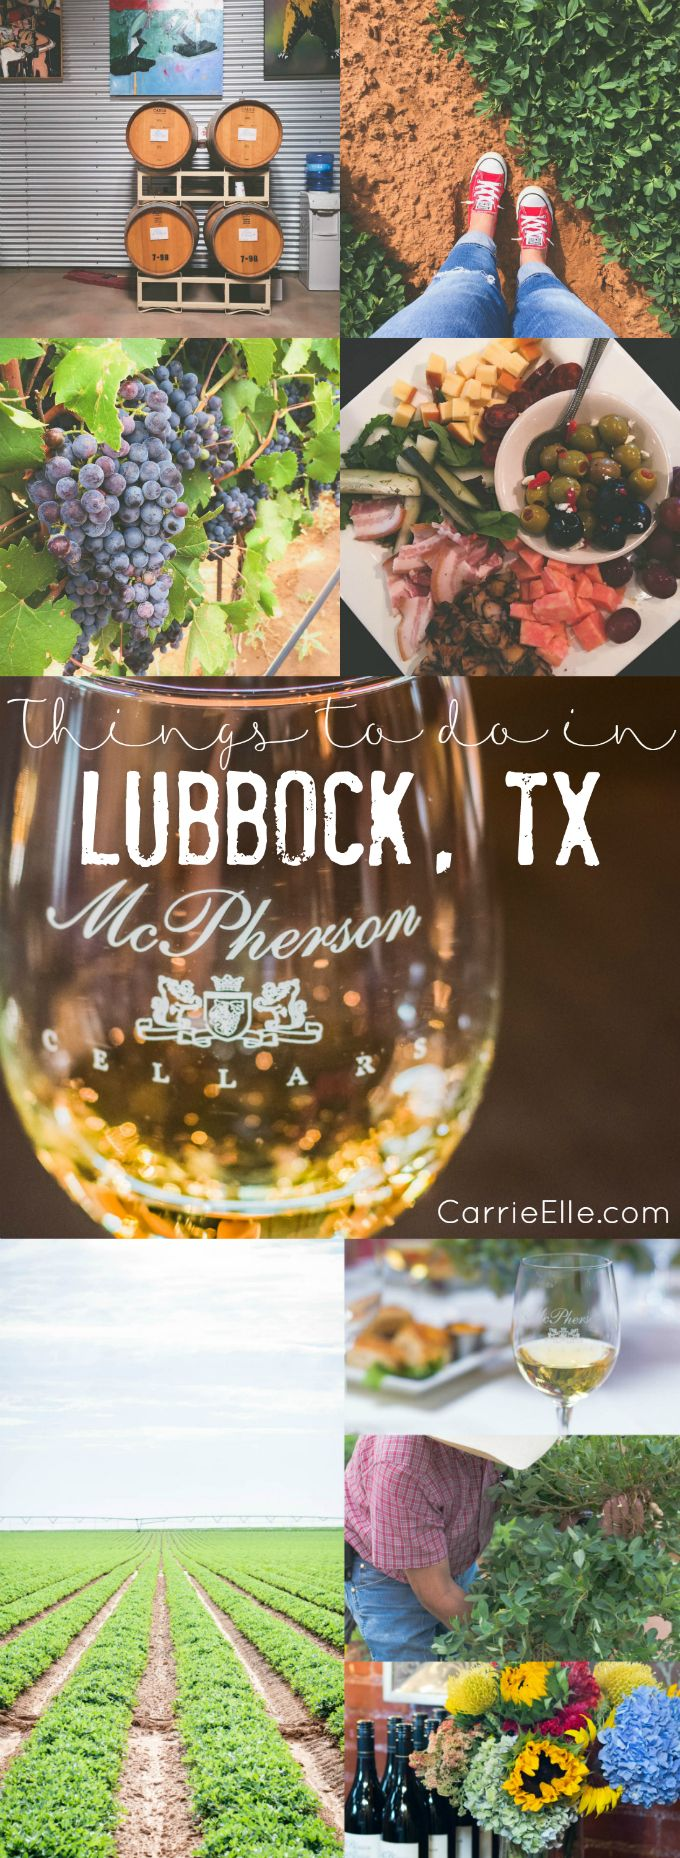 5 Things To Do In Lubbock, Texas | Fine Dining, Full Of And Things To Do In